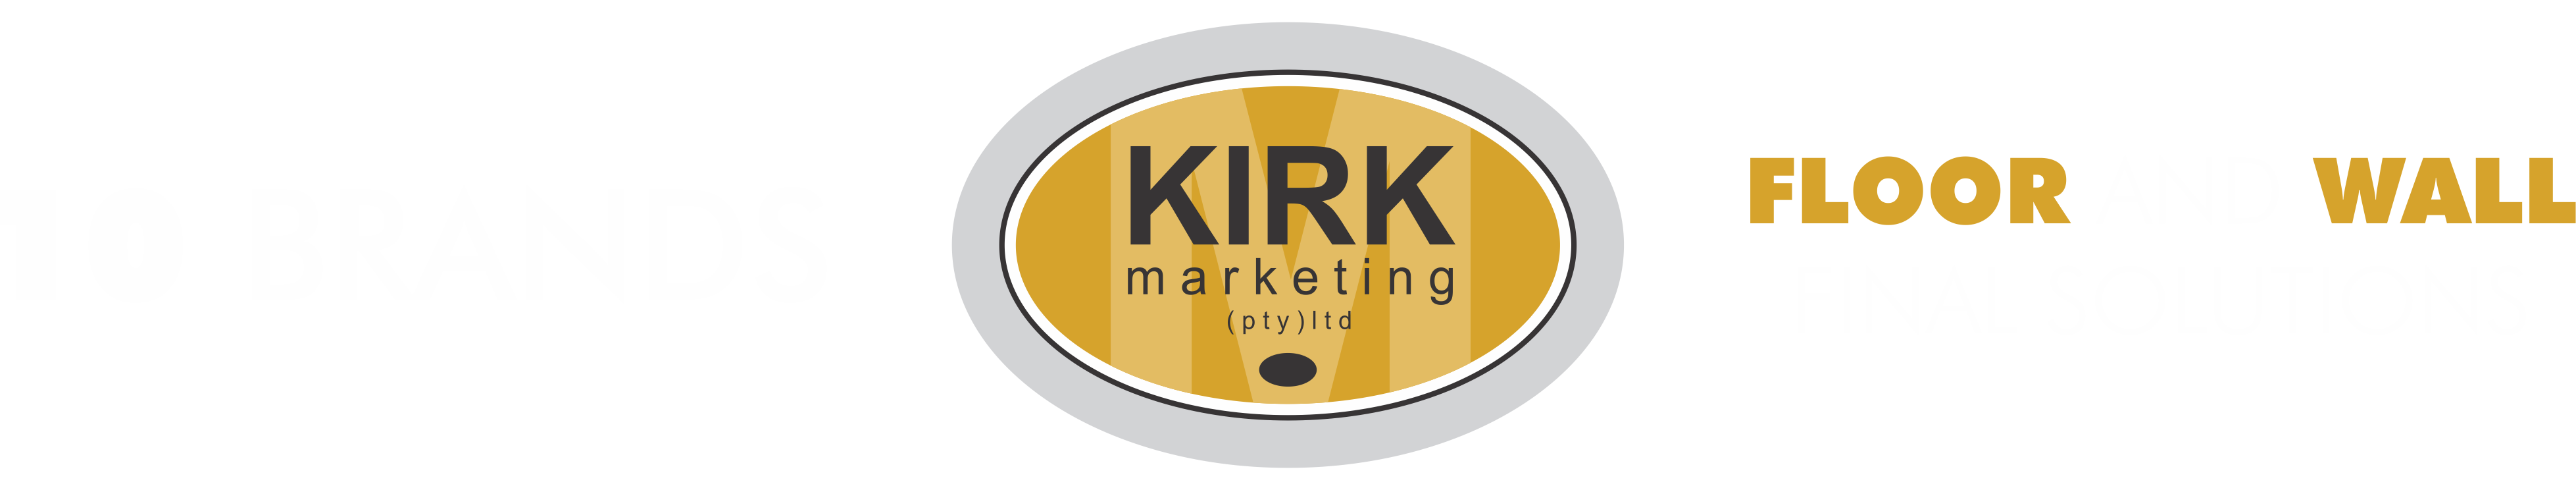 Kirk Marketing